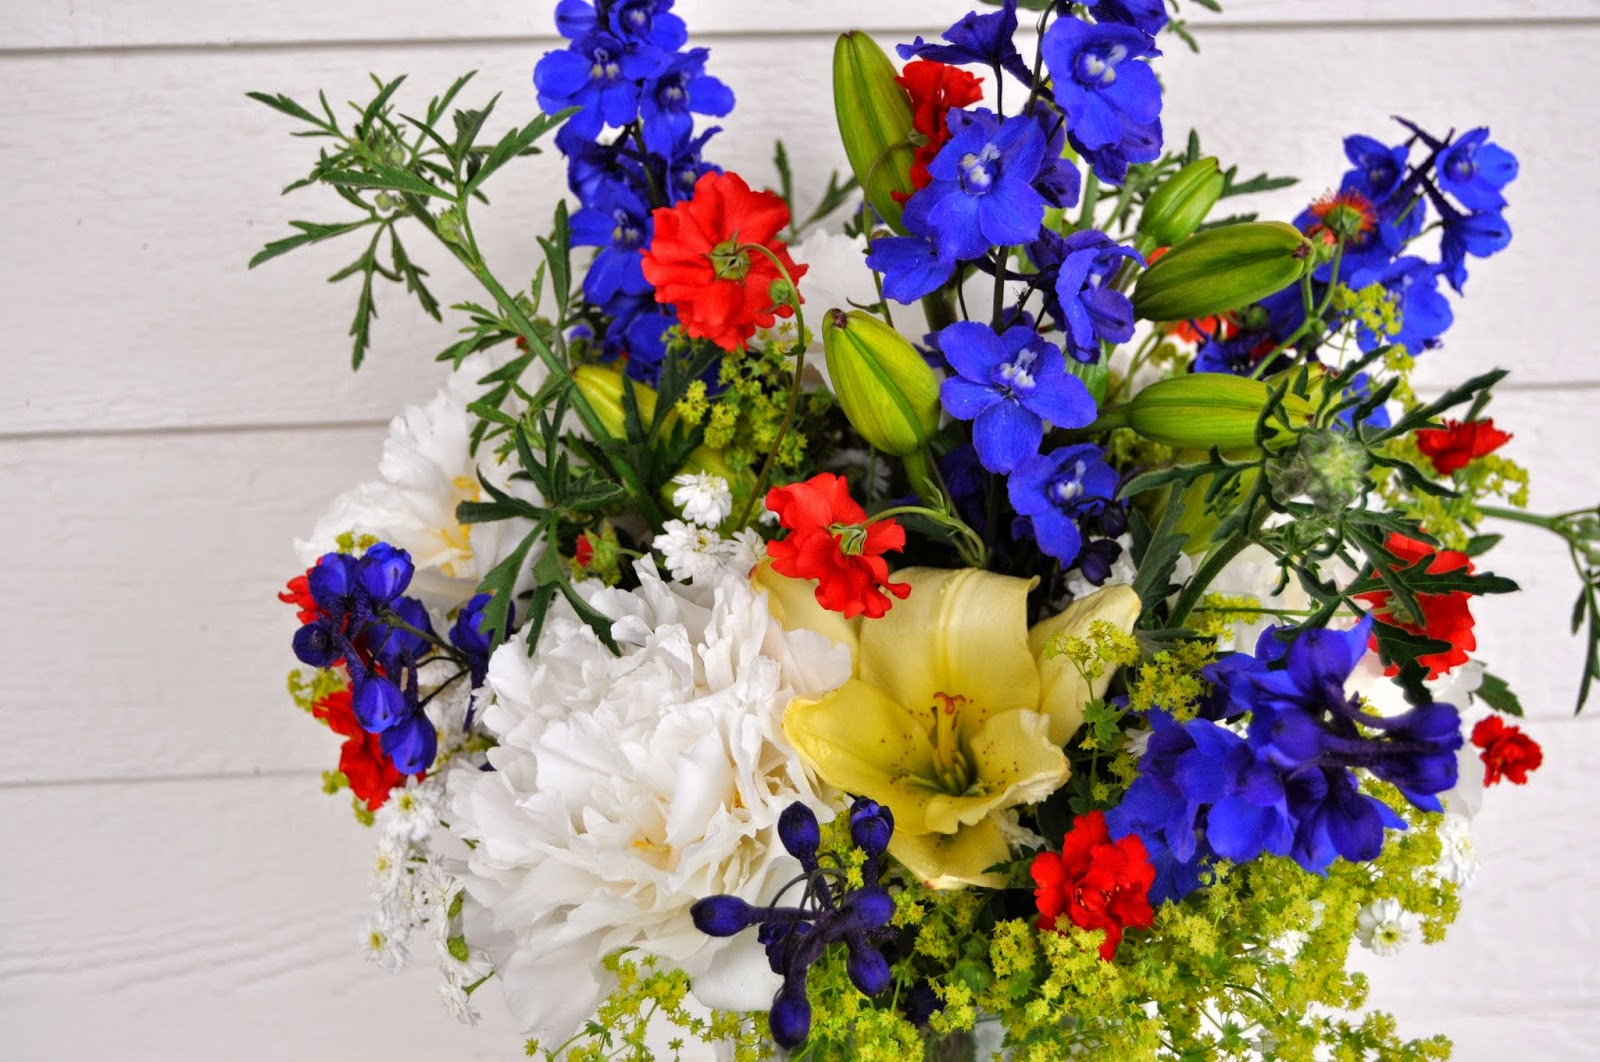 Delphinium flower tattoo http refreshrose blogspot com - Delphinium Flower Arrangements